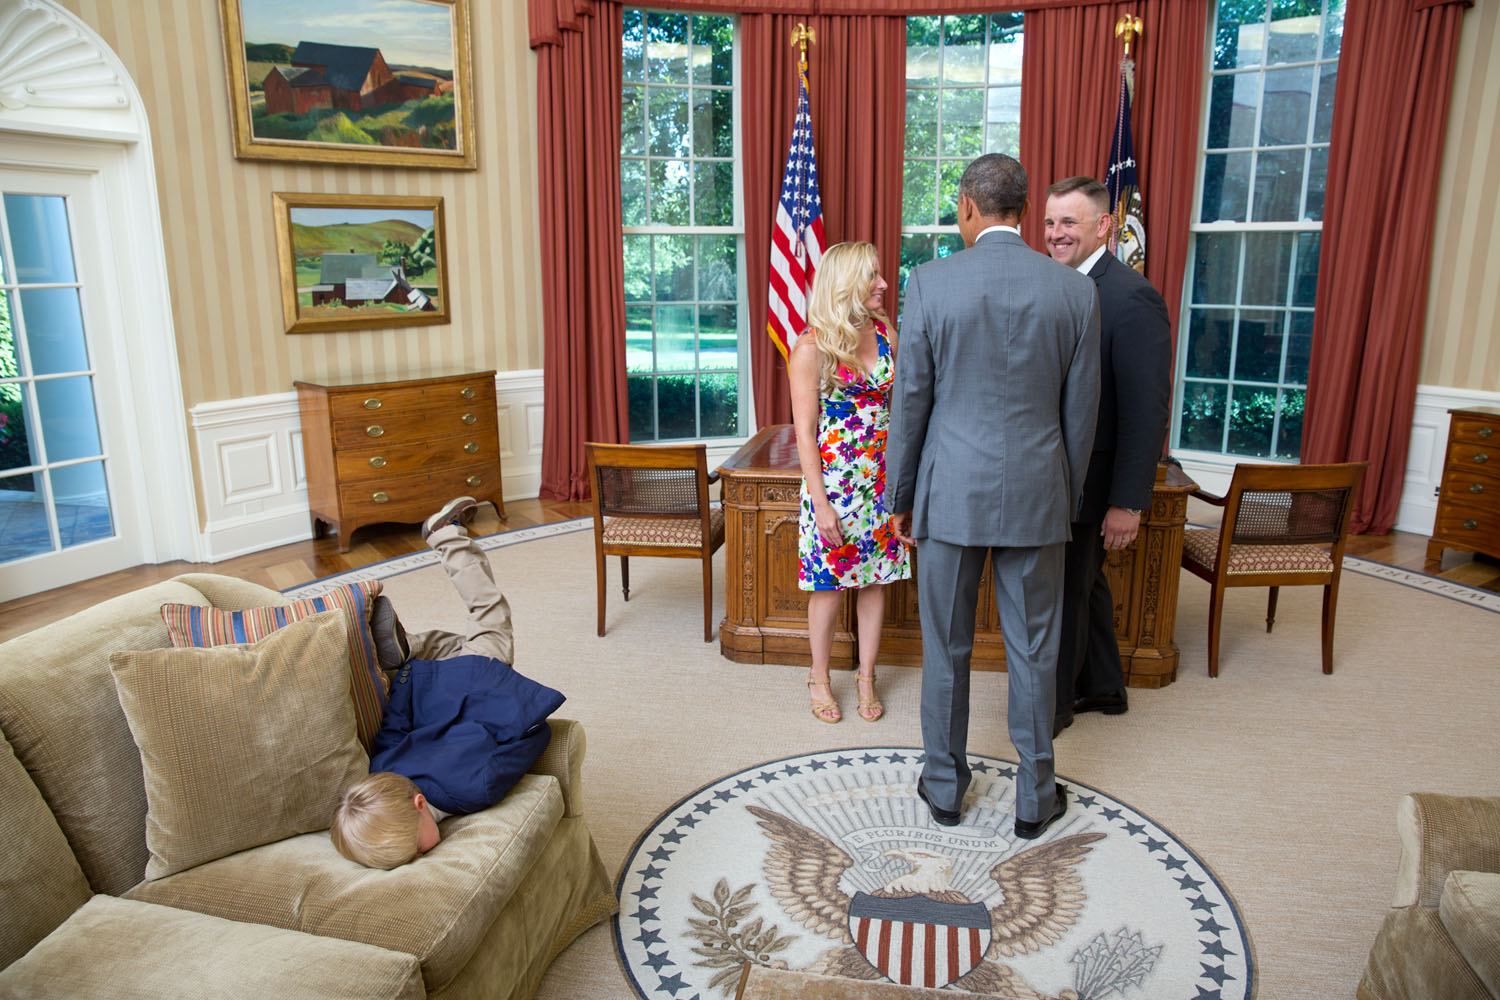 obamas oval office. A Young Boy Face-plants Onto The Sofa In Oval Office As President Obamas 1